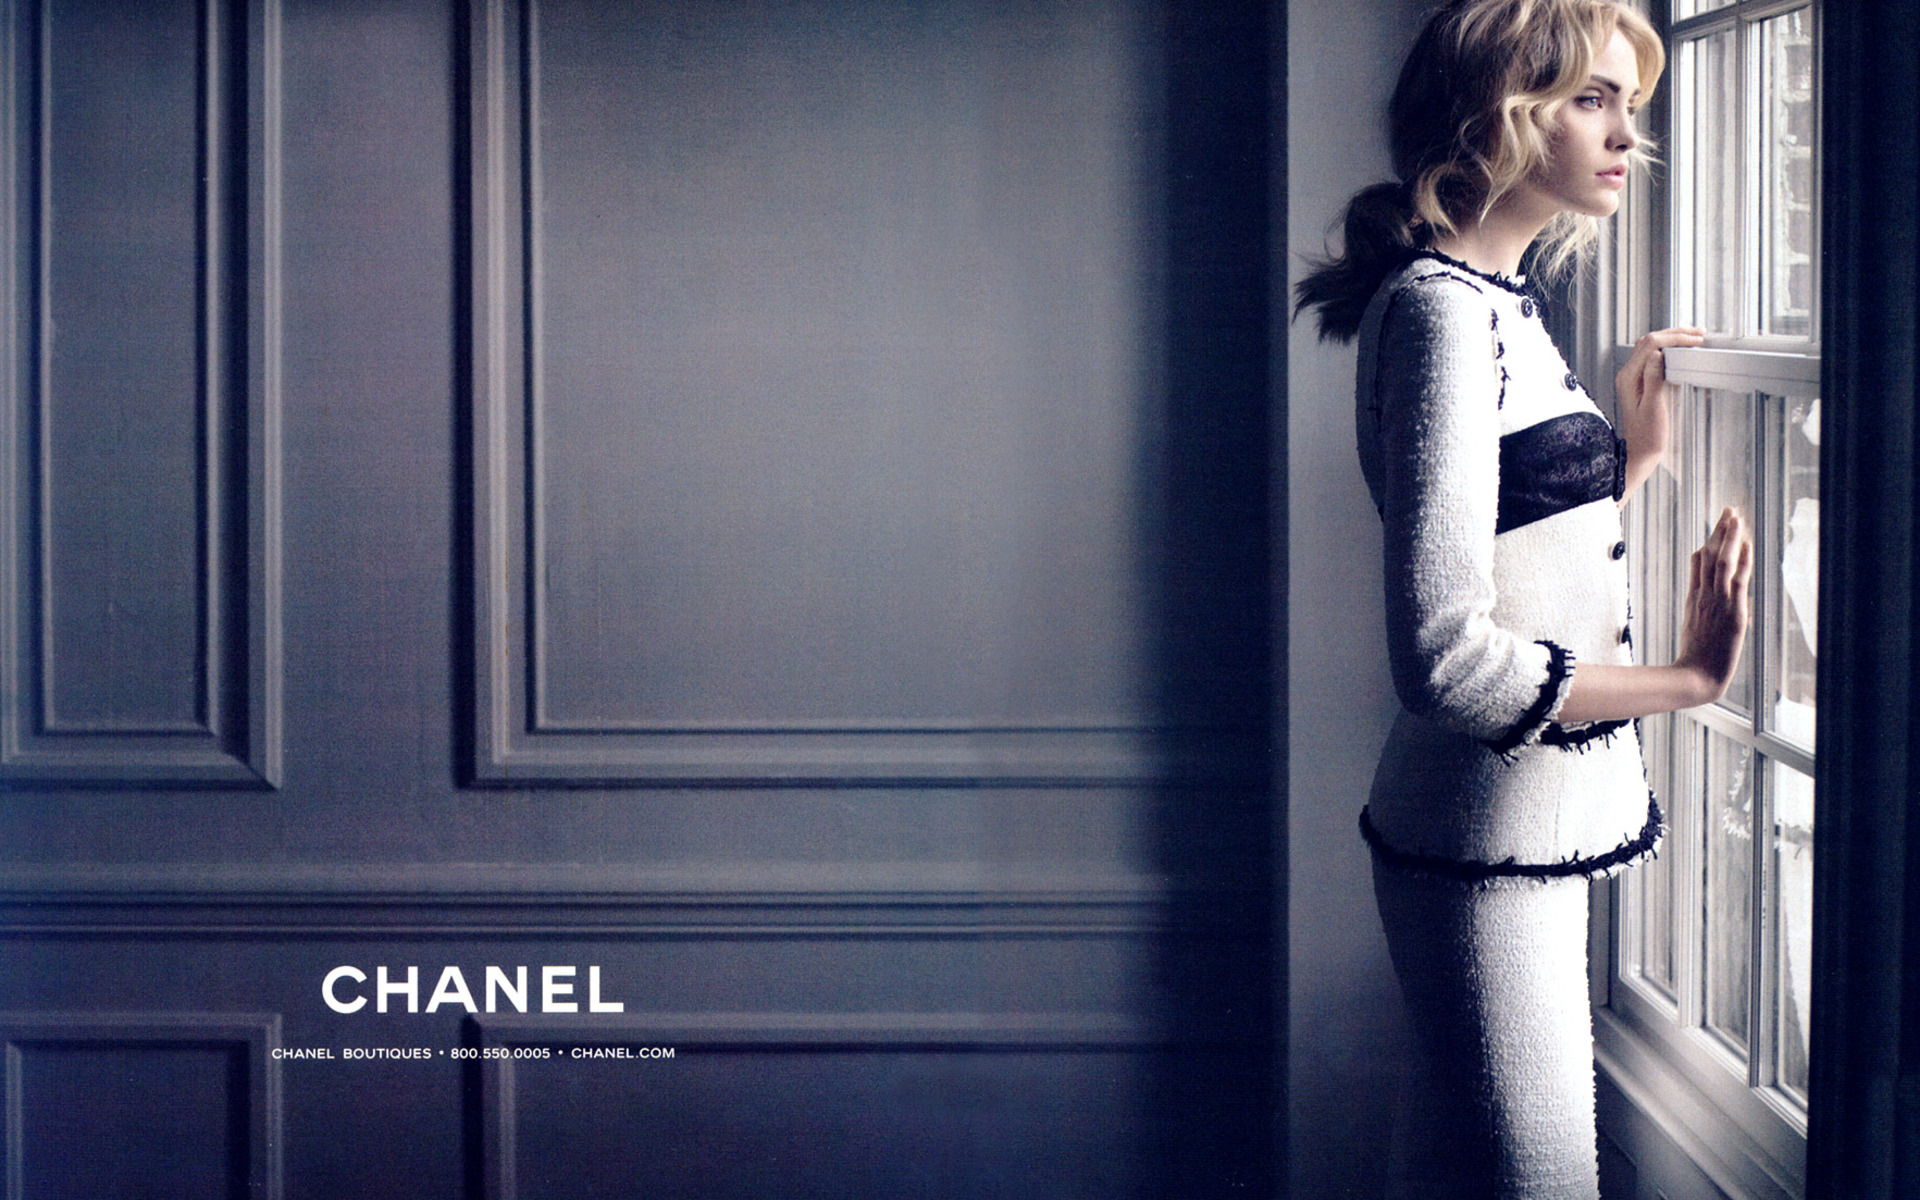 Chanel wallpapers hd wallpapersafari for High fashion meaning